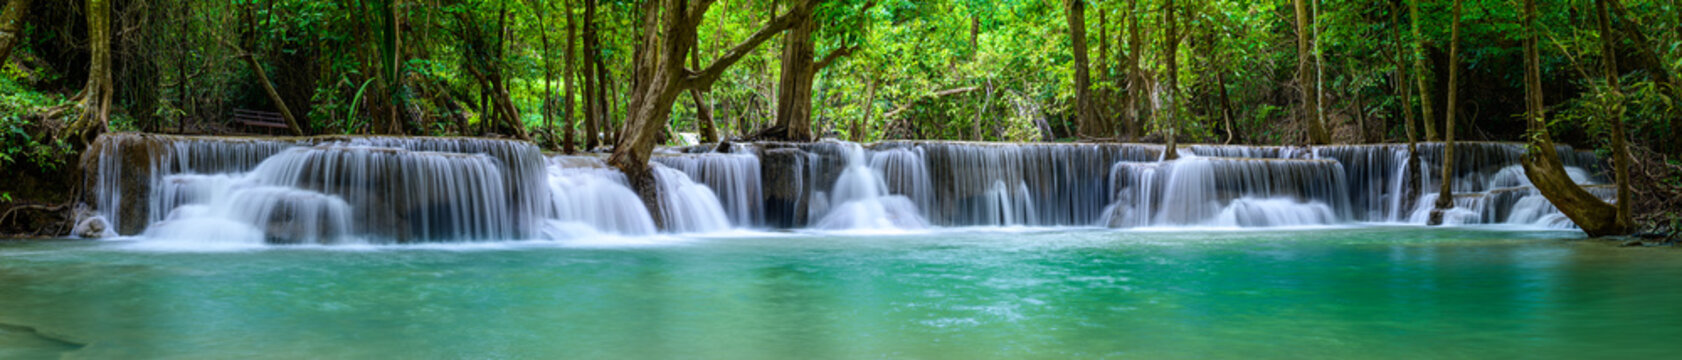 A beautiful waterfall deep in the tropical forest steep mountain adventure in the rainforest.